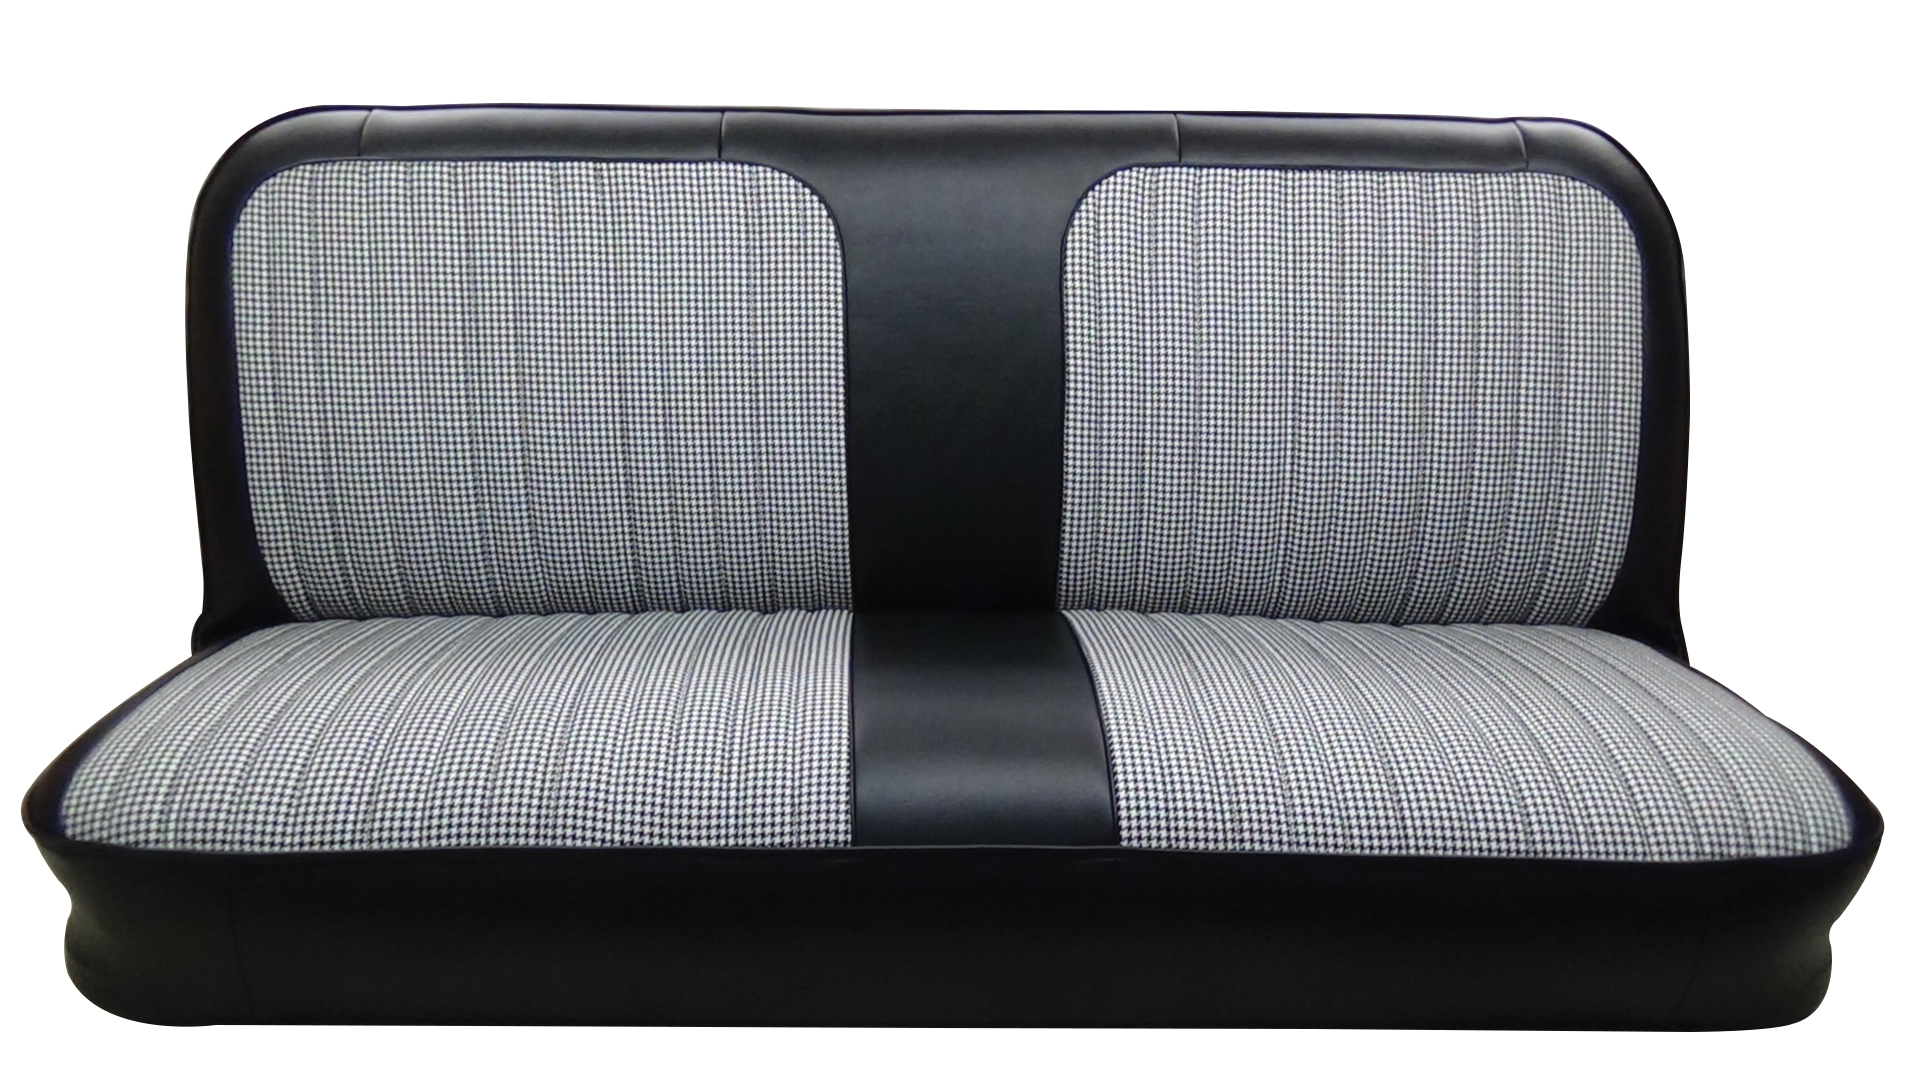 Groovy Upholstery 1967 72 Chevrolet Truck Front Bench Seat With Beatyapartments Chair Design Images Beatyapartmentscom